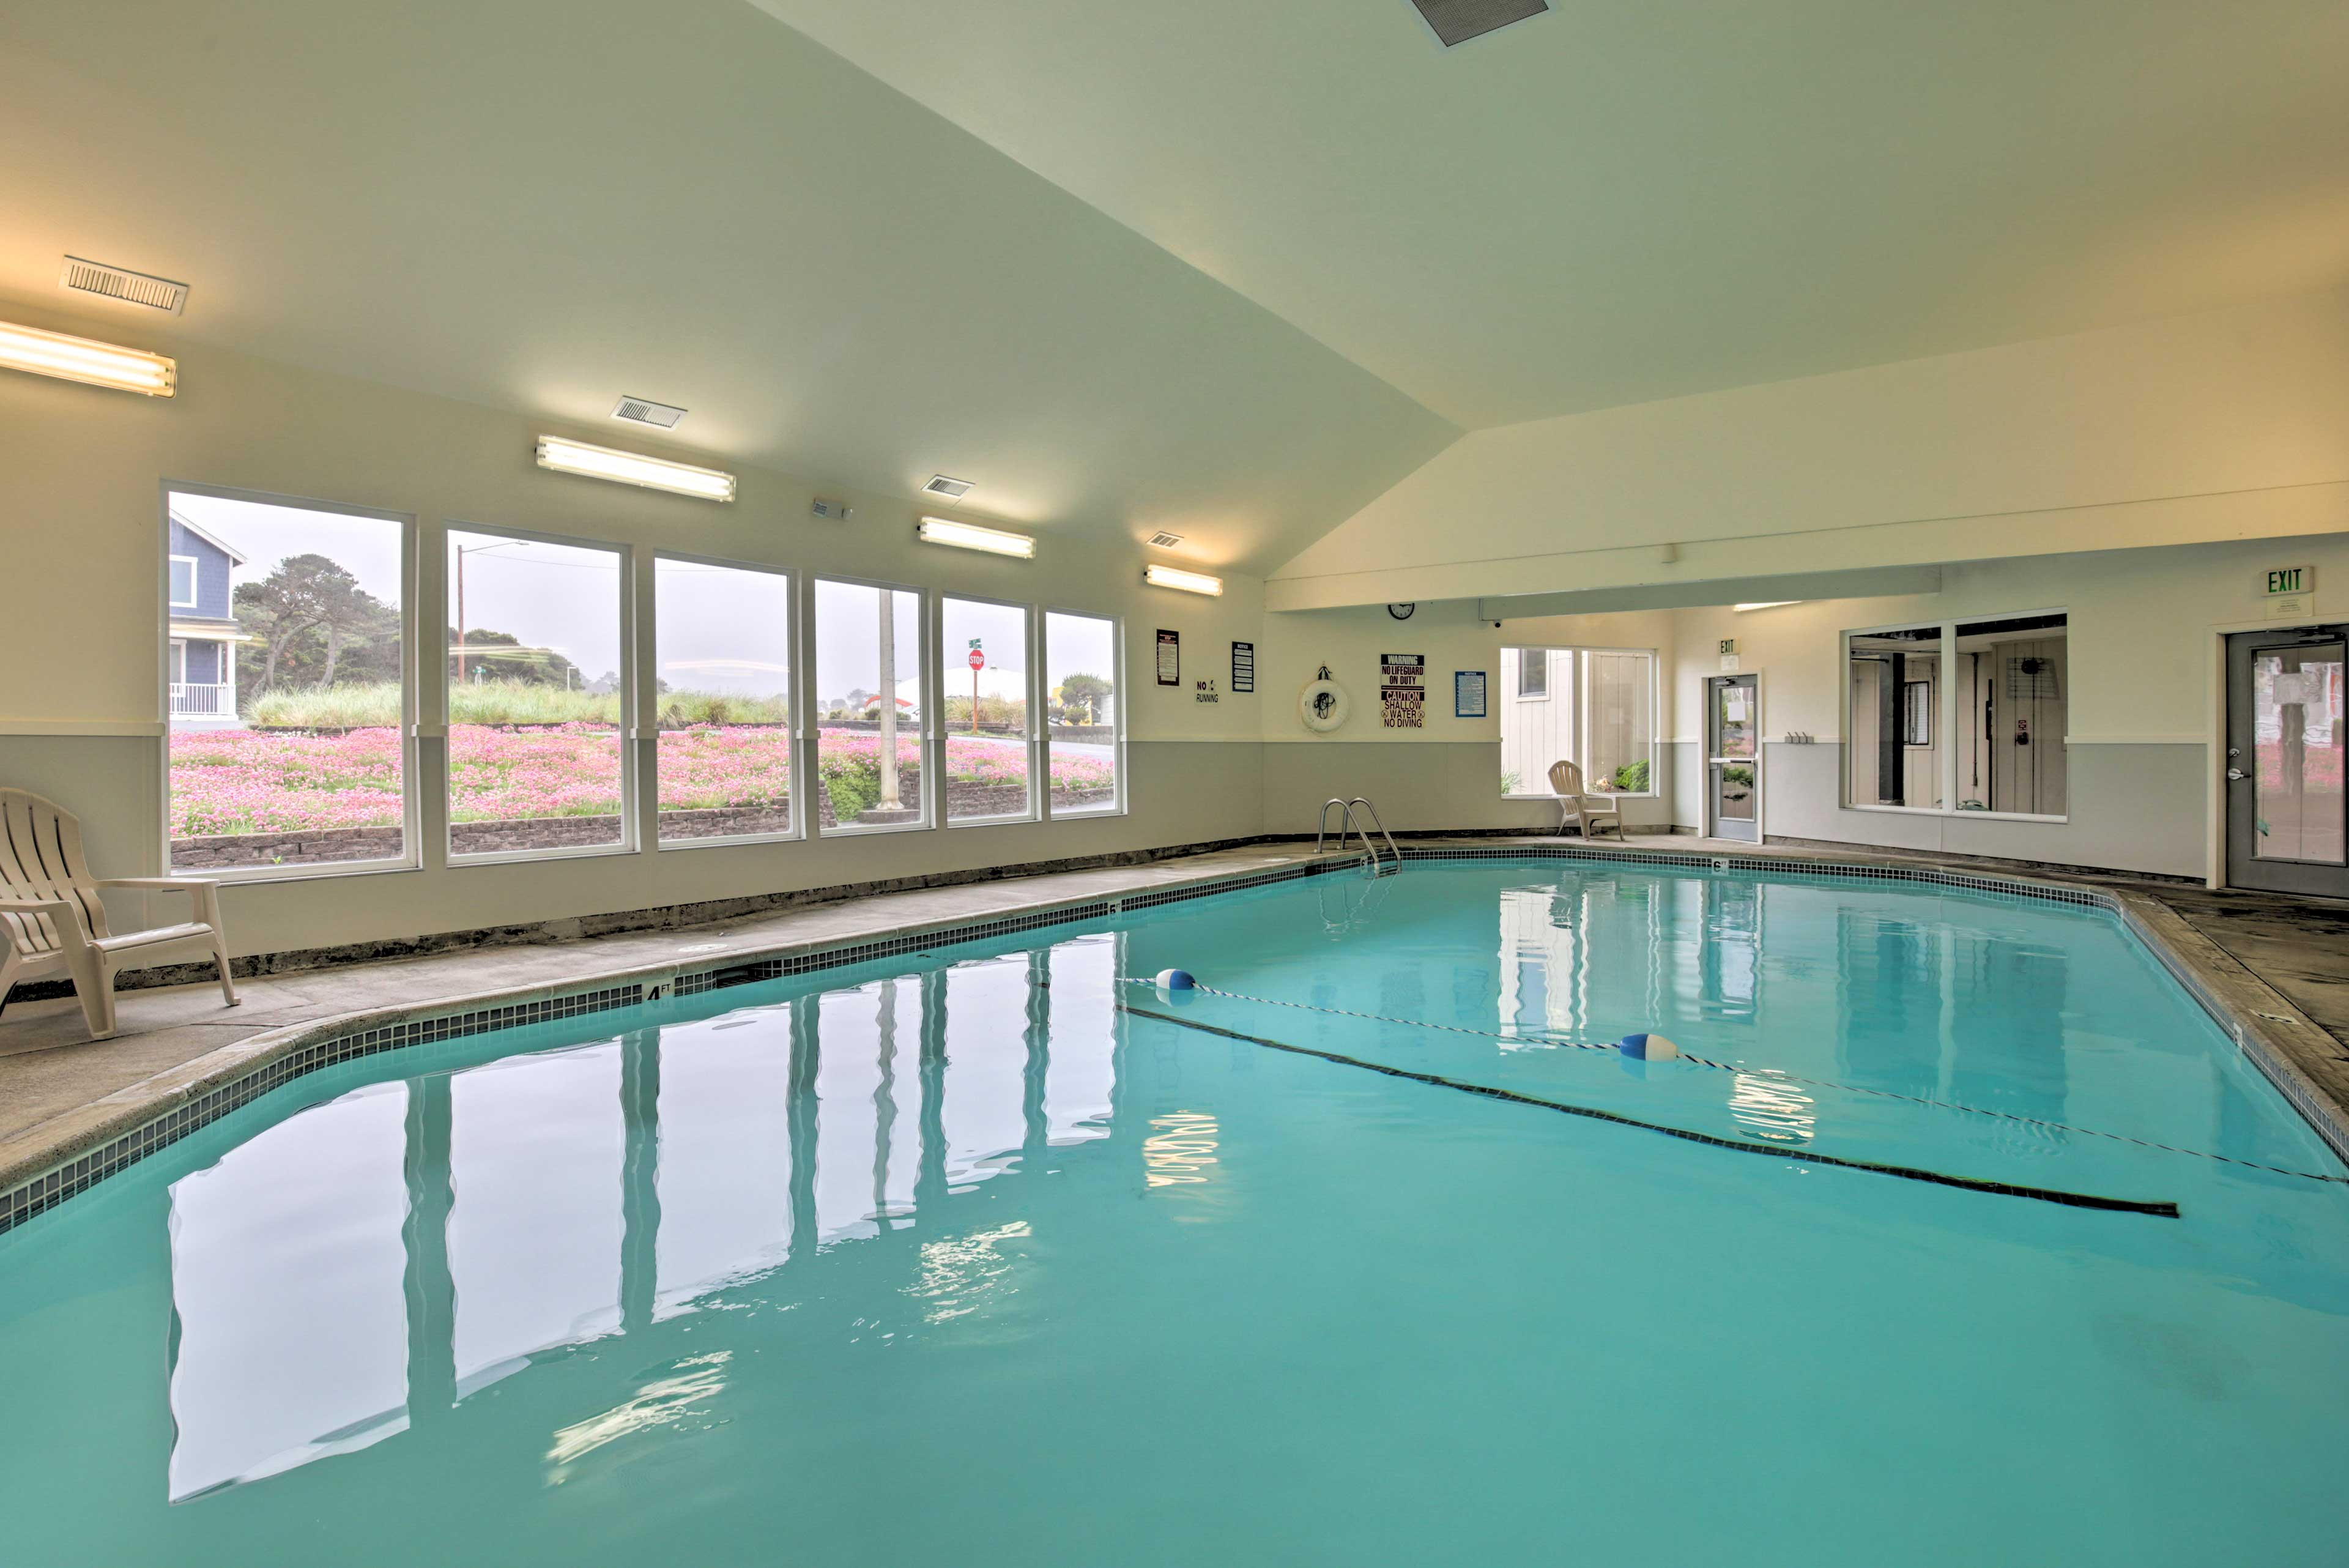 You'll also have access to the community pool, spa, game room & sports courts!